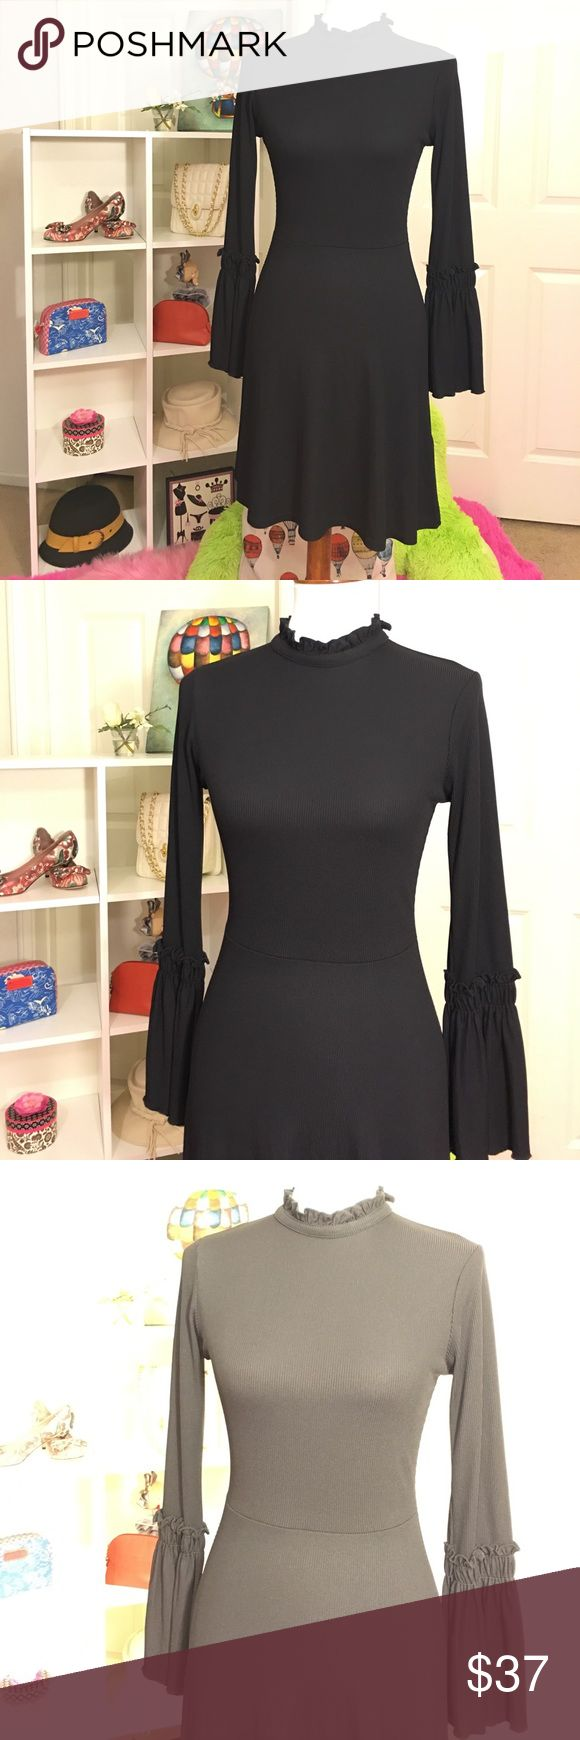 NEW TOPSHOP DRESS SIZE: 6 New Topshop dress size: 6 / color: black/ stretchable/ see all photos!!! Thank you!!! Topshop Dresses